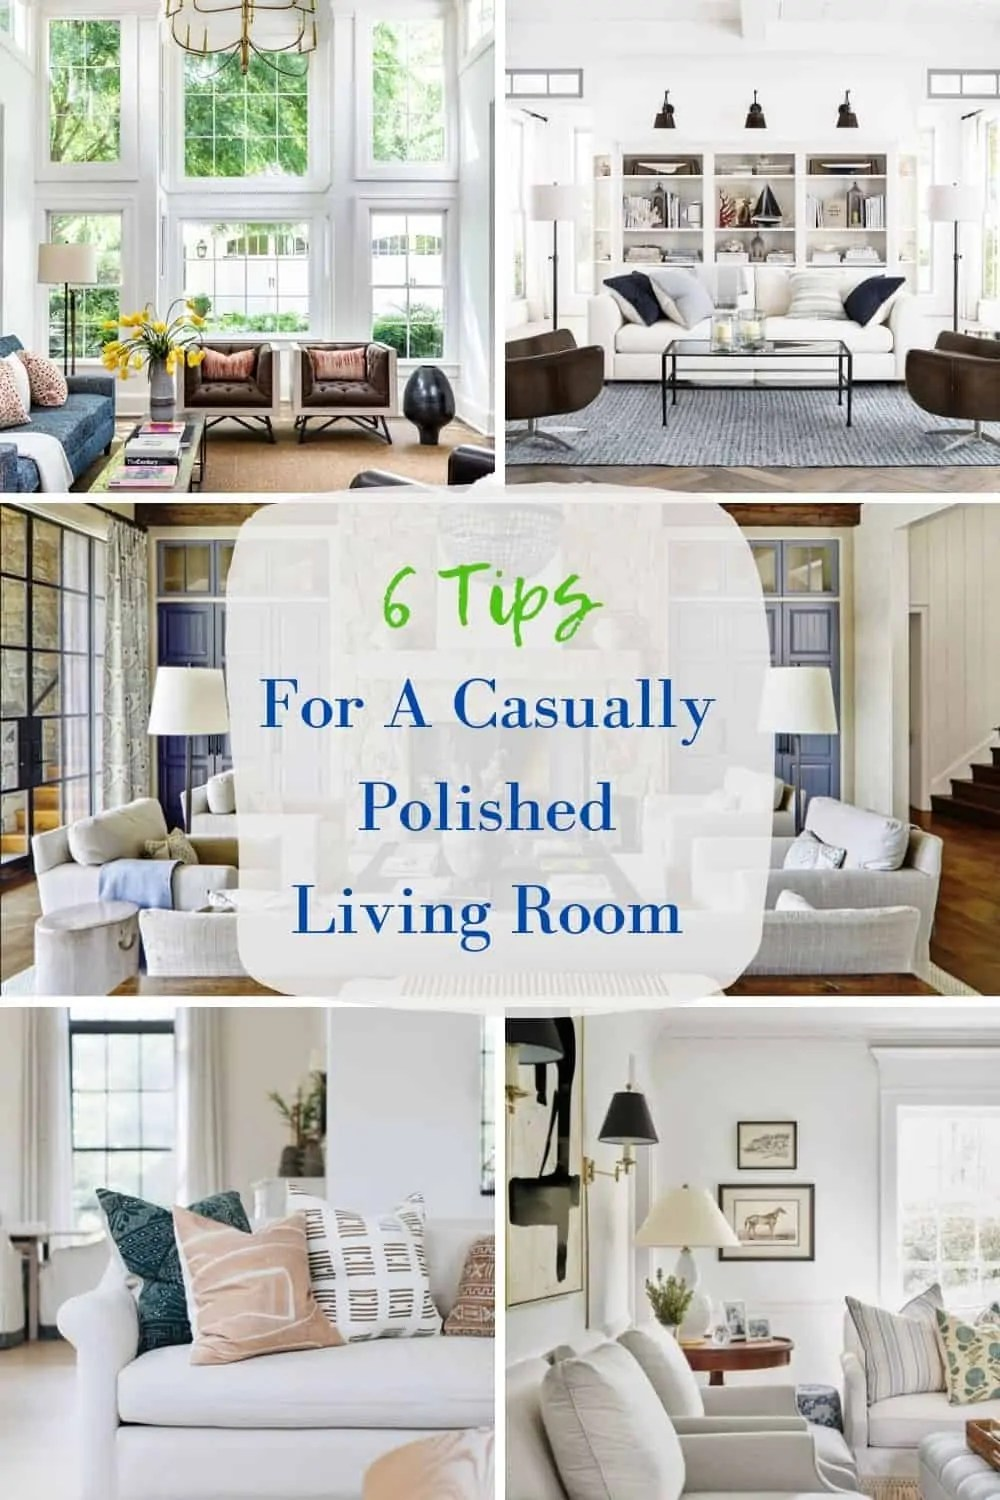 Mary Ann Pickett's tips for a polished living room